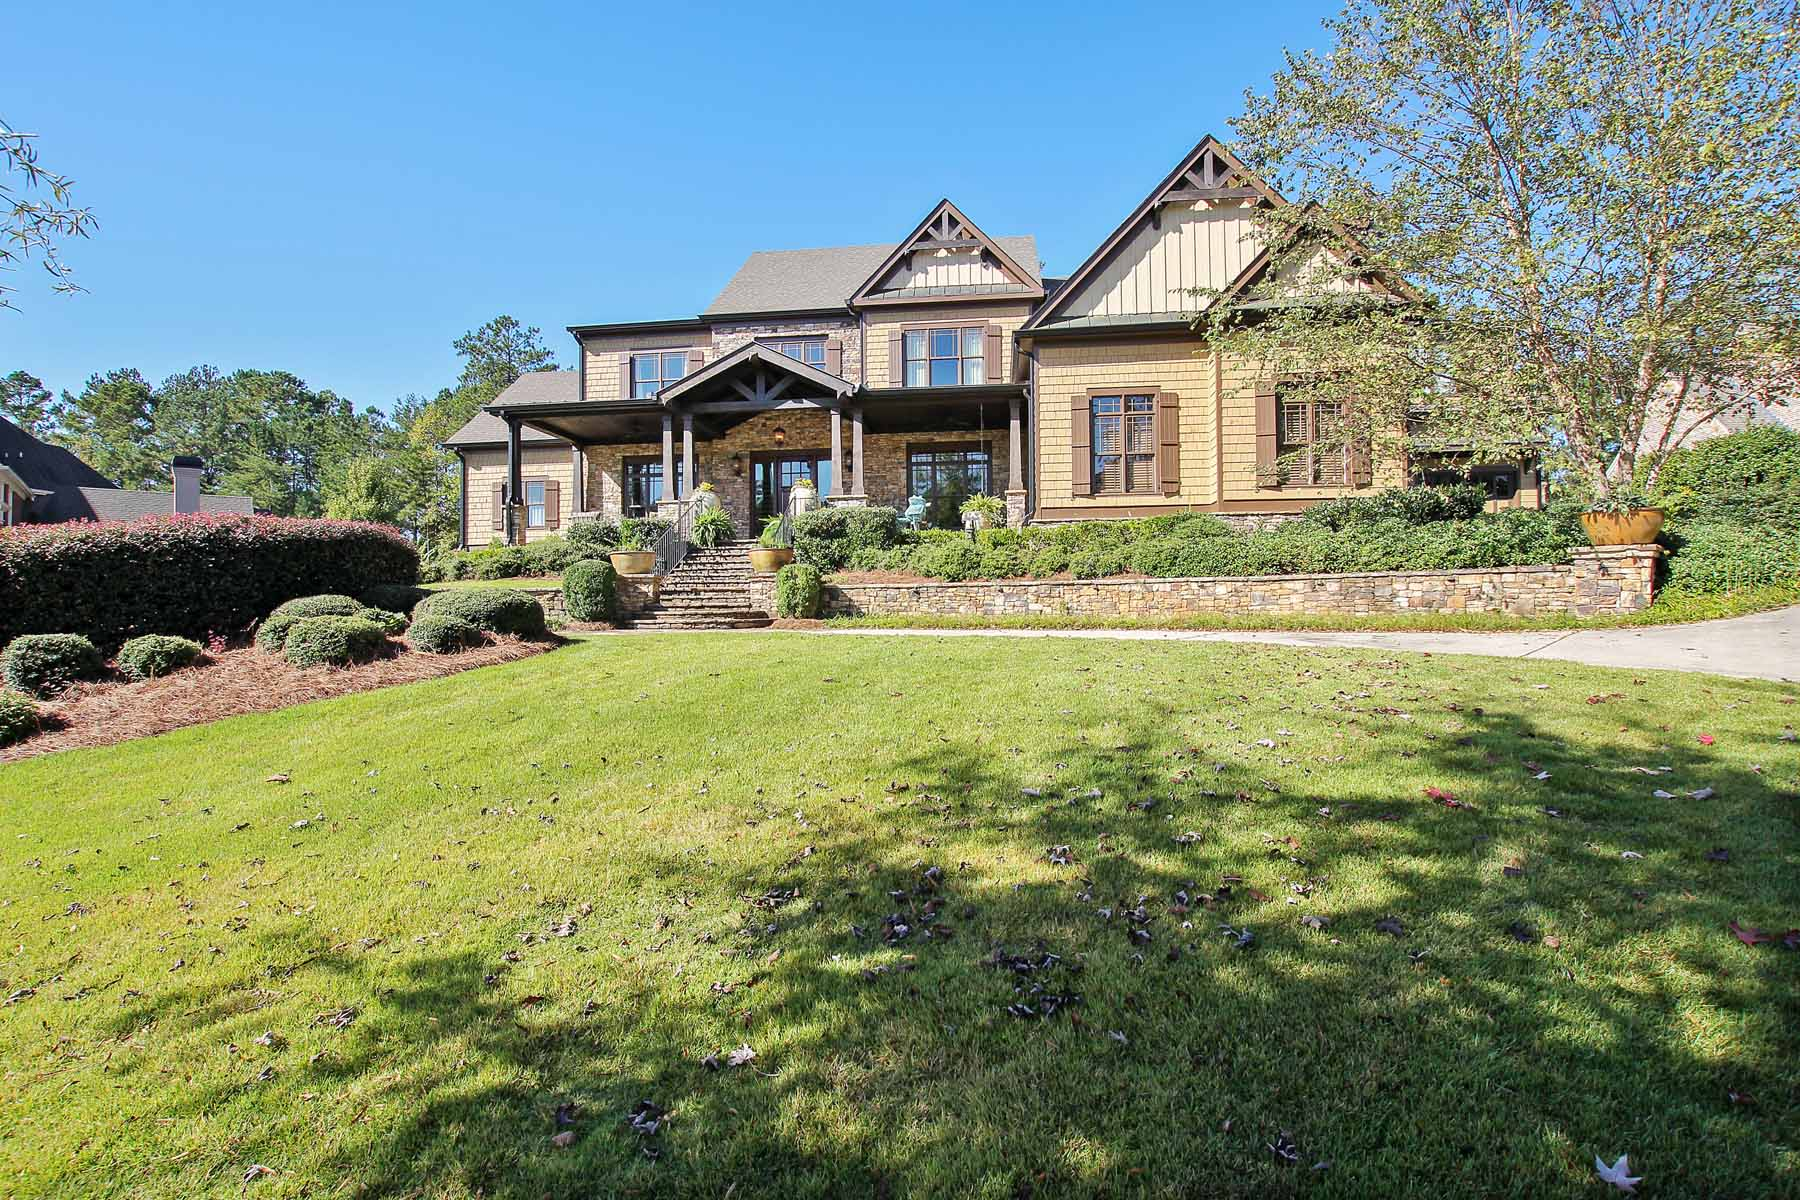 Maison unifamiliale pour l Vente à Luxurious Custom Golf Home 4391 Oglethorpe Loop NW Acworth, Georgia 30101 États-Unis